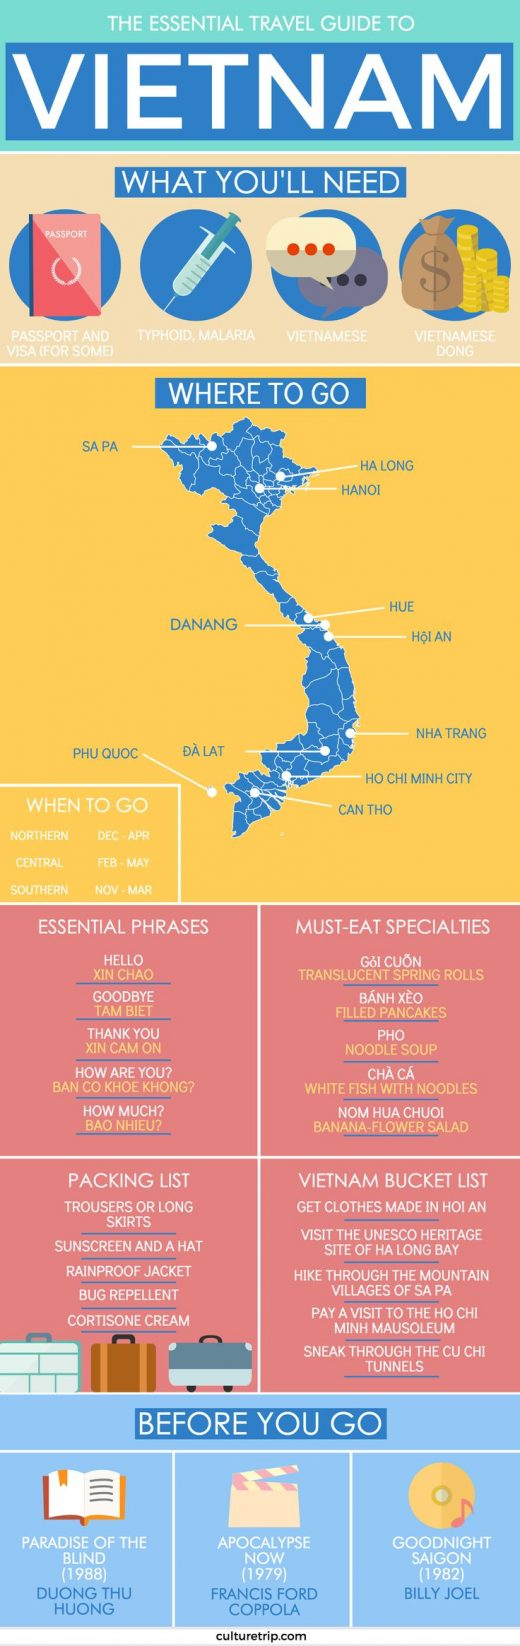 The Essential Travel Guide To Vietnam (Infographic)